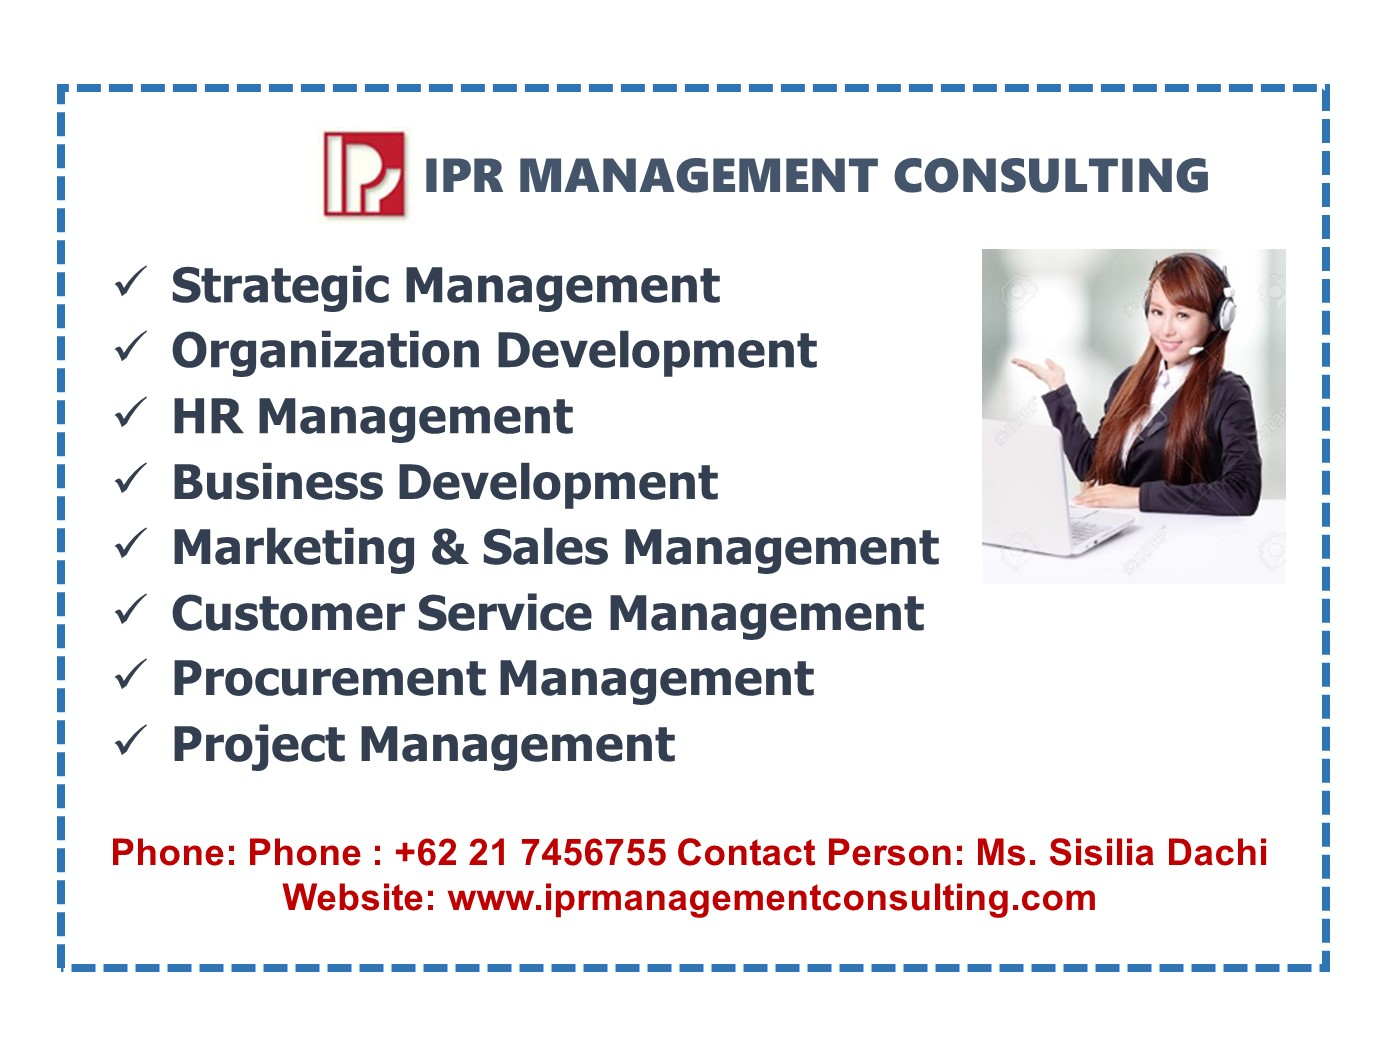 IPR Management Consulting